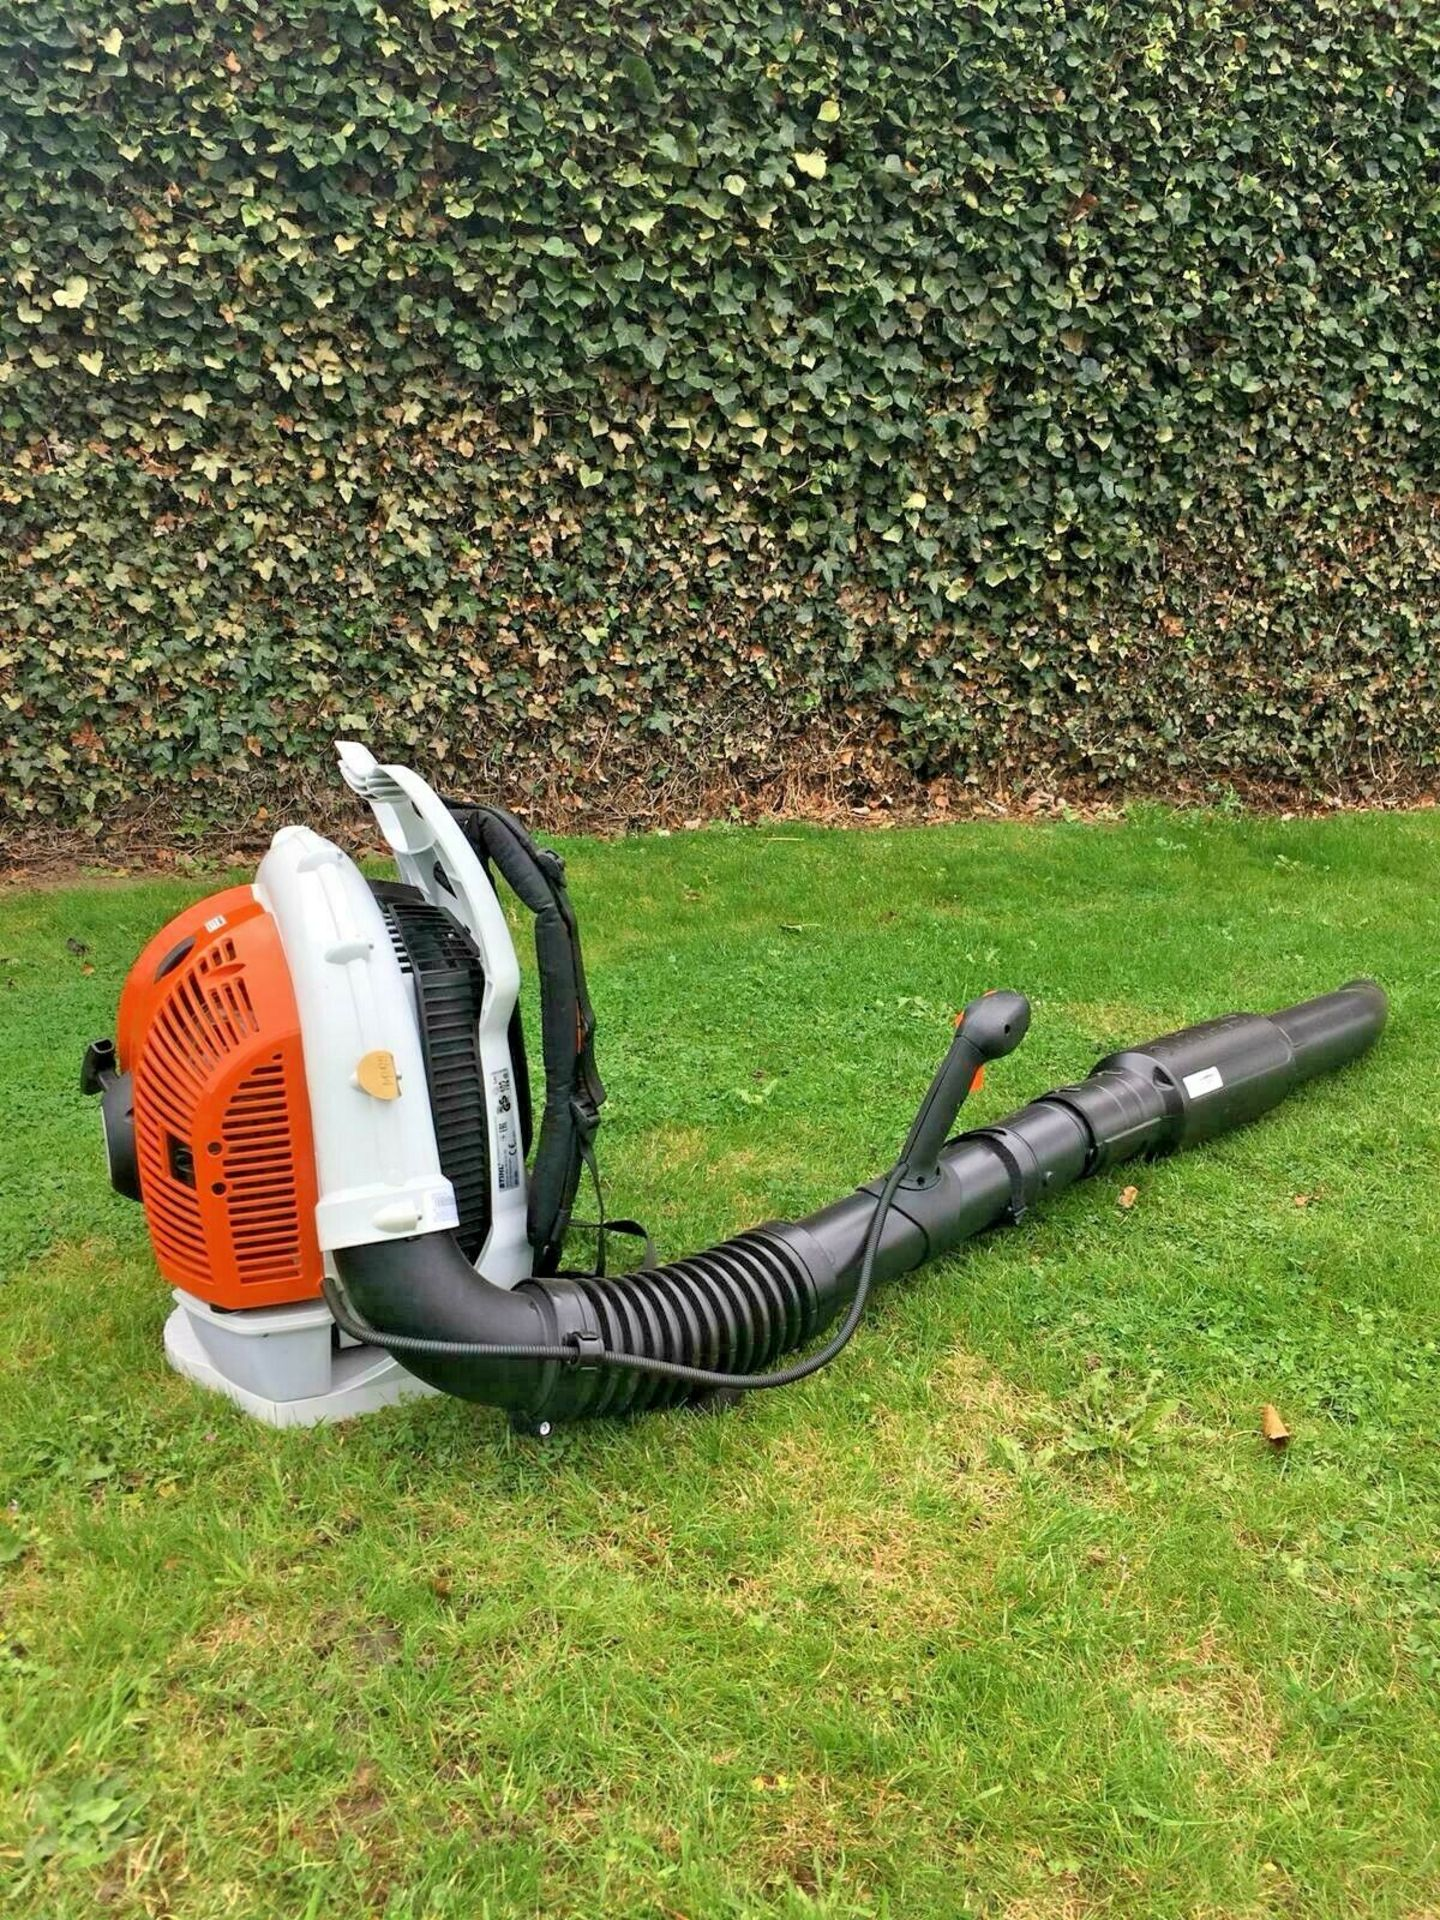 STIHL BACK PACK LEAF BLOWER, MODEL: BR500, MANUFACTURED 07/2017, NEVER USED, CHOICE OF 2 *PLUS VAT* - Image 3 of 7